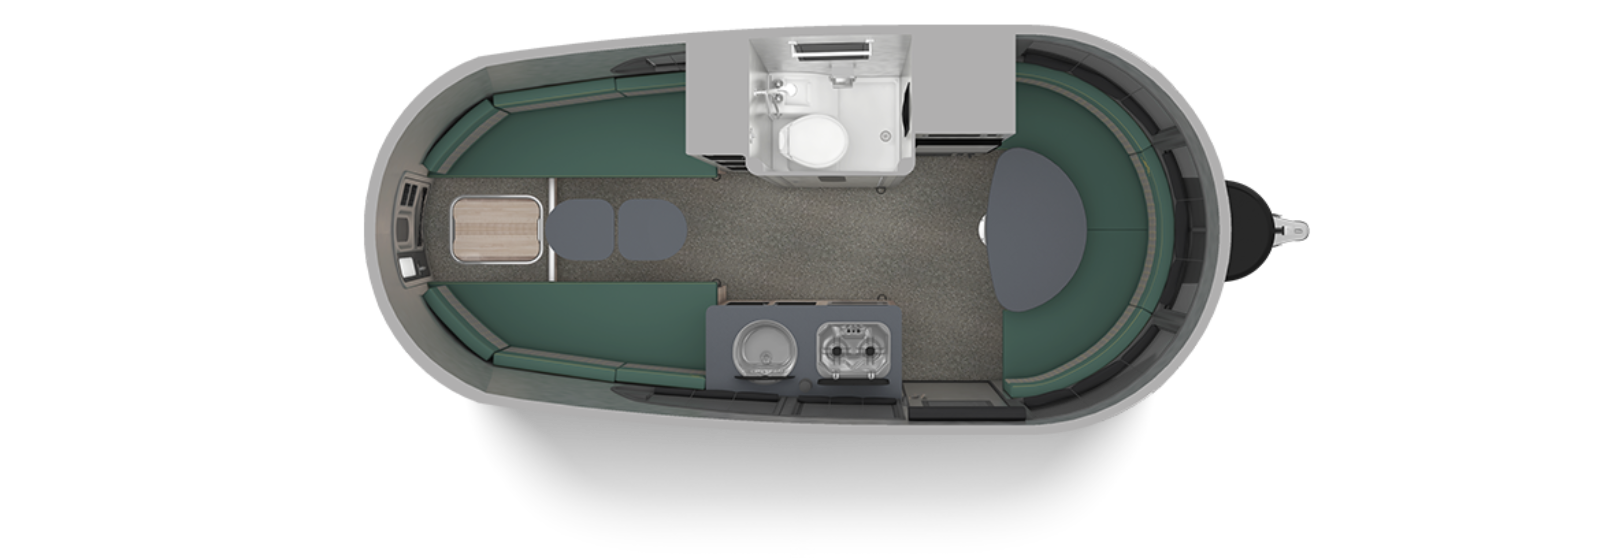 Airstream-Basecamp-20-Forest-Ridge-Floor-Plan-v2